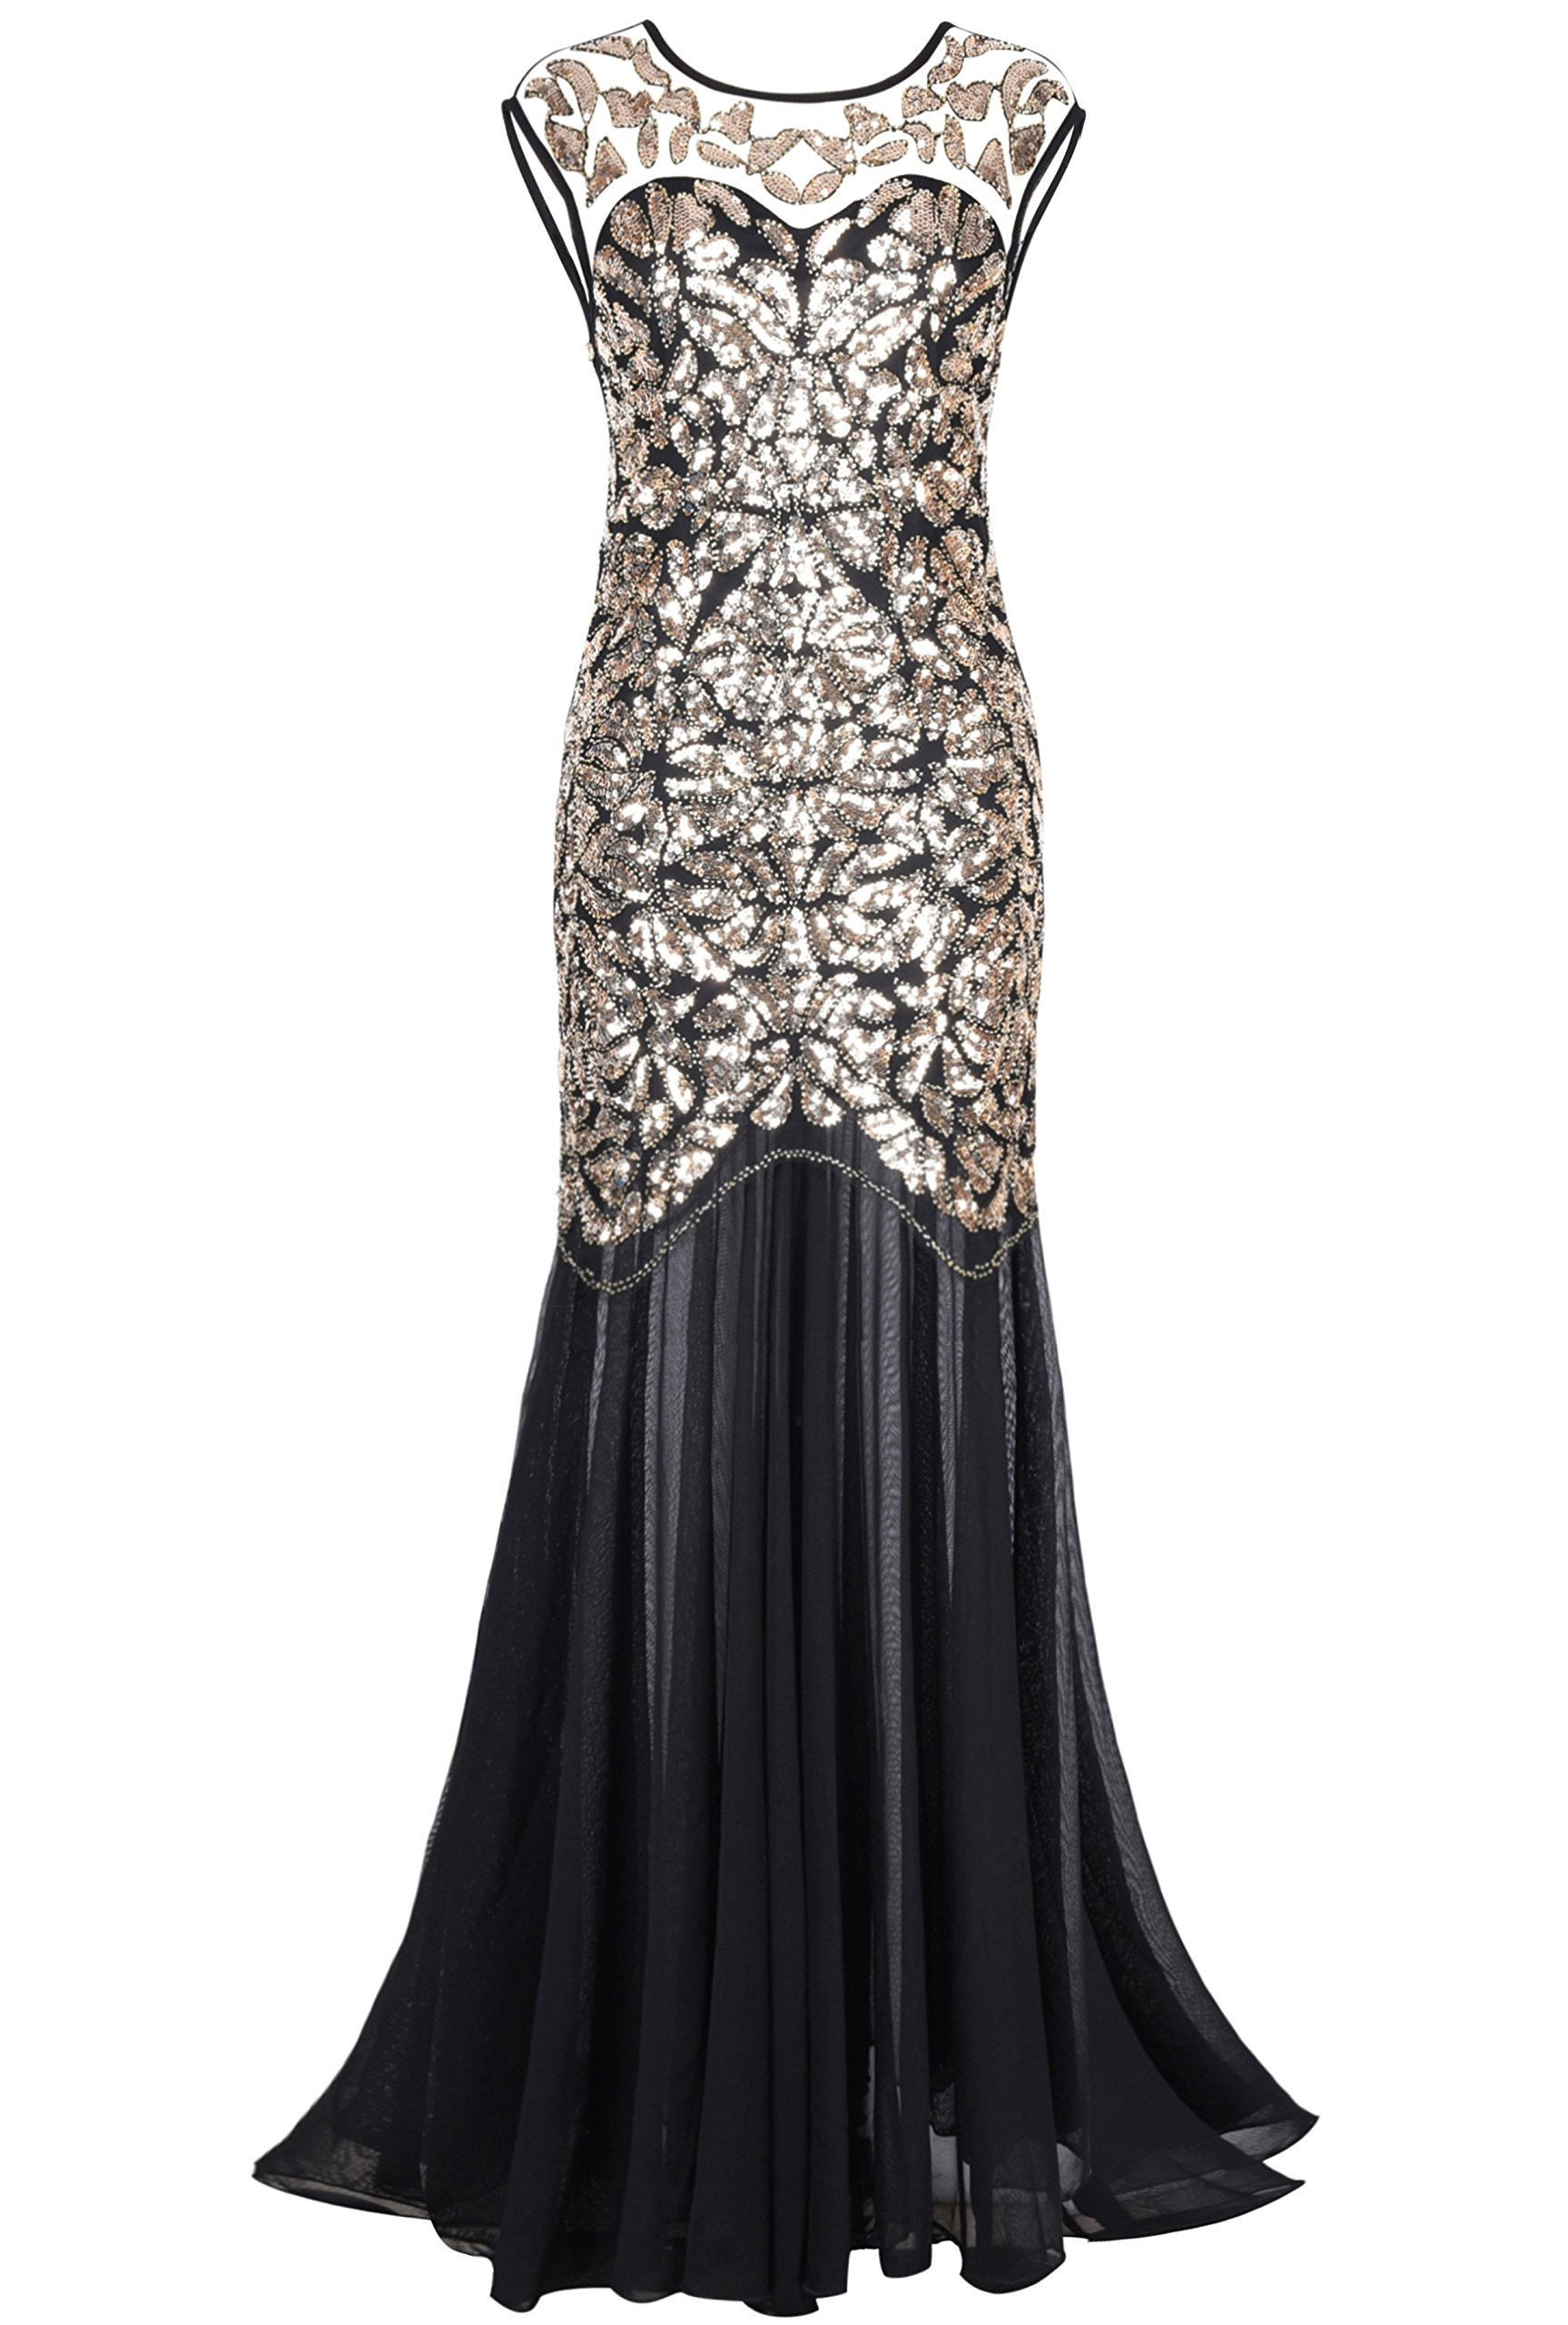 PrettyGuide Women 's 1920s Black Sequin Gatsby Maxi Long Evening Prom Dress, Gold - 10/12